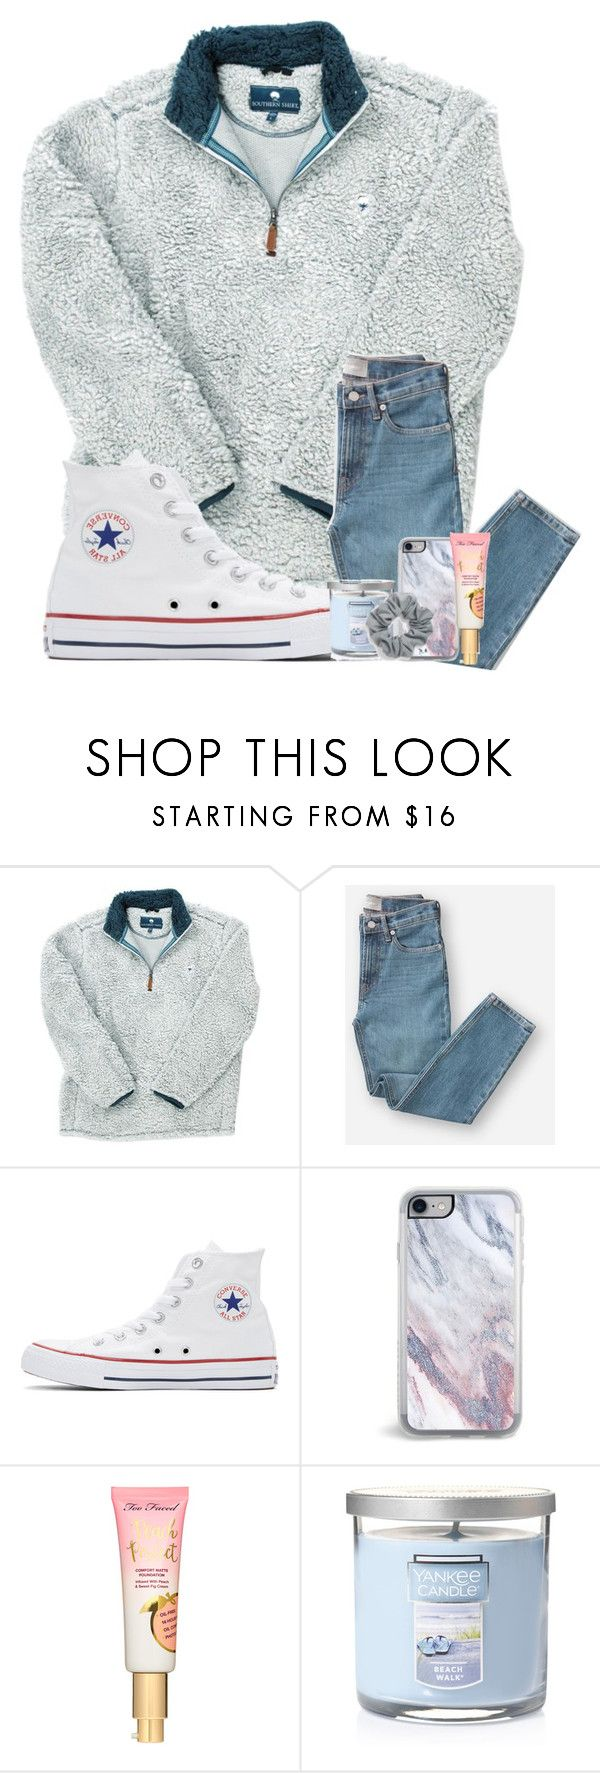 """Untitled #1"" by preppypuffpuff on Polyvore featuring Everlane, Converse, Zero Gravity, Yankee Candle and Natasha"